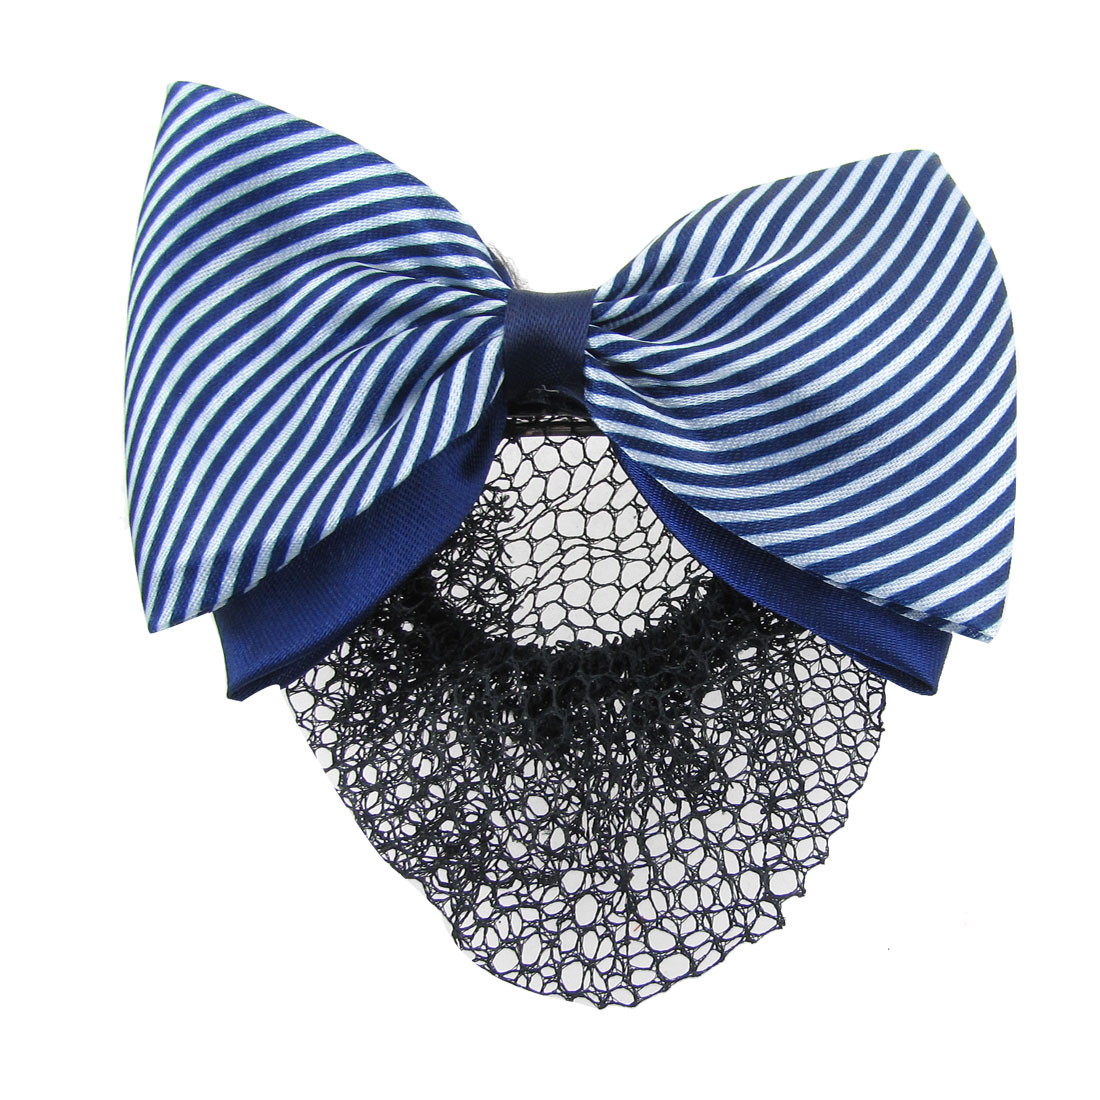 Striped Bowknot Snood Net Bun Cover Barrette Hair Clip Blue White